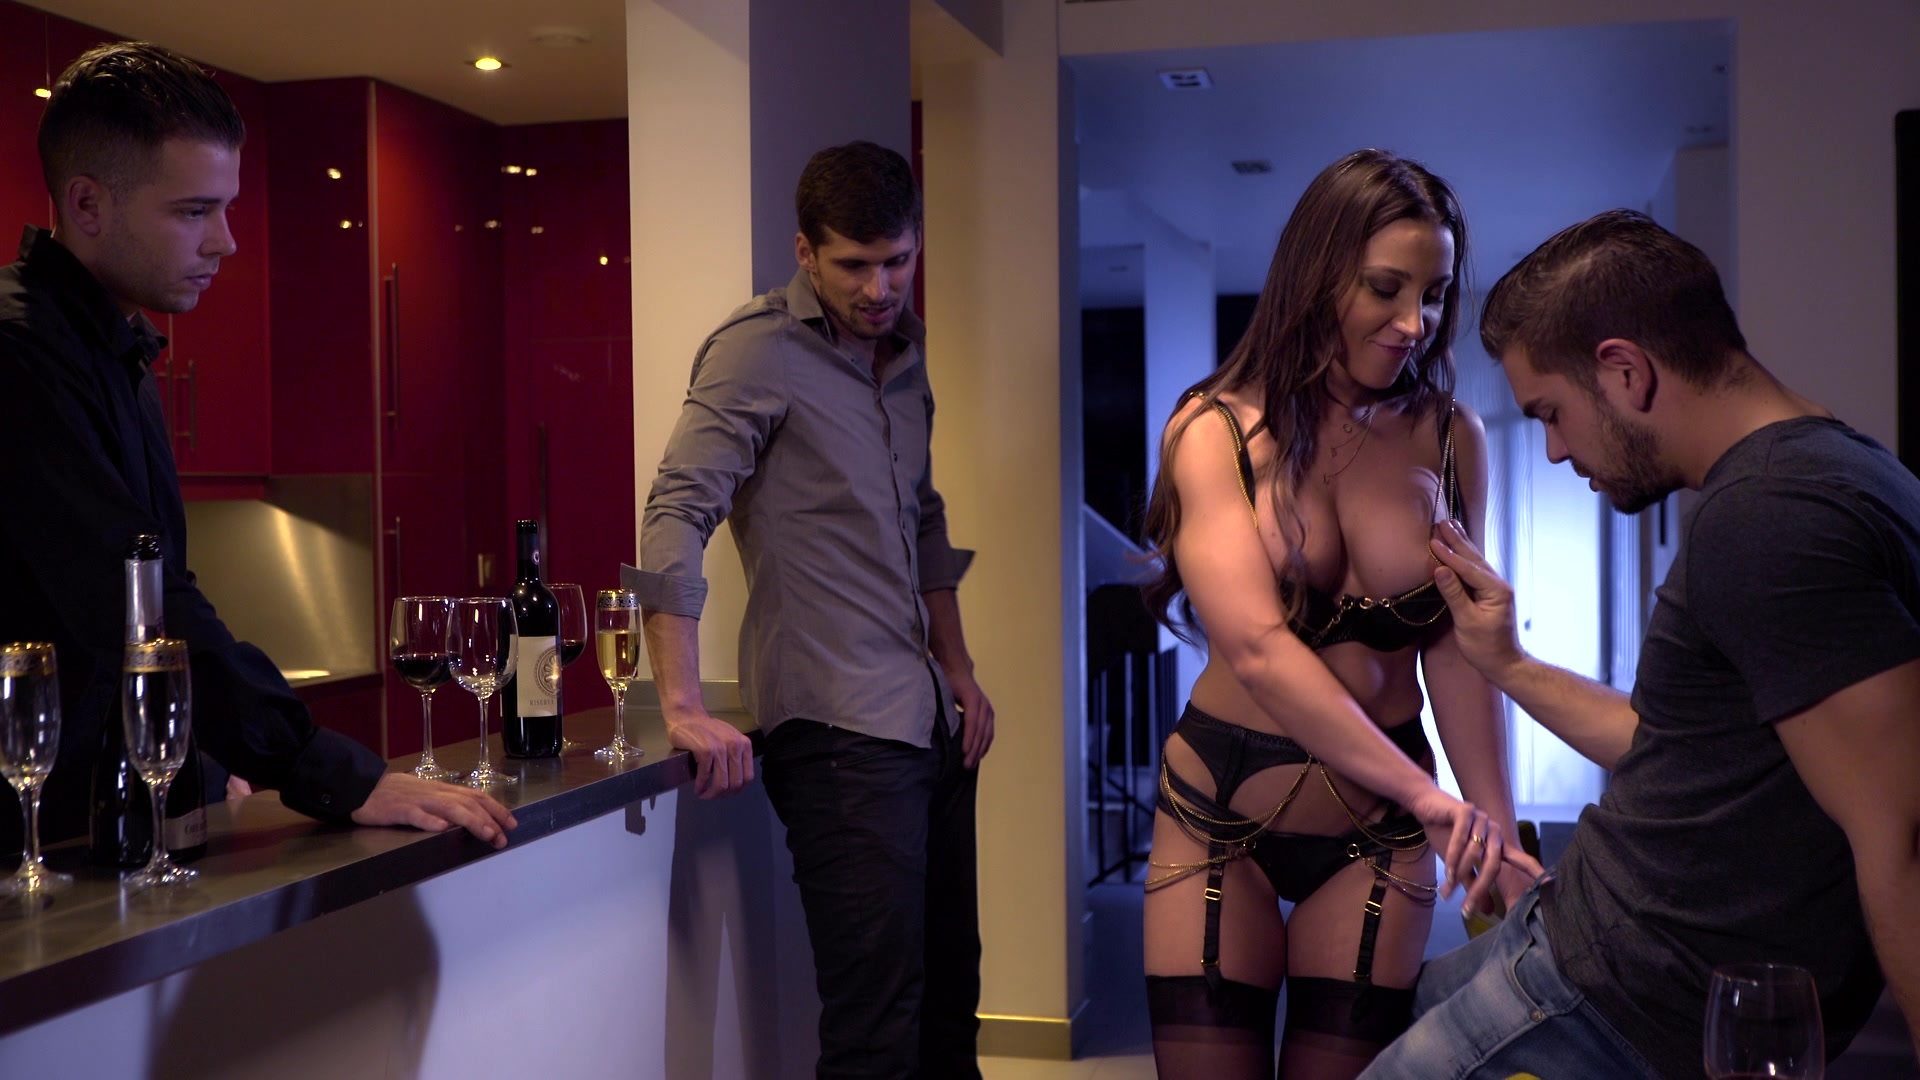 Scene with Julie Skyhigh - image 6 out of 20